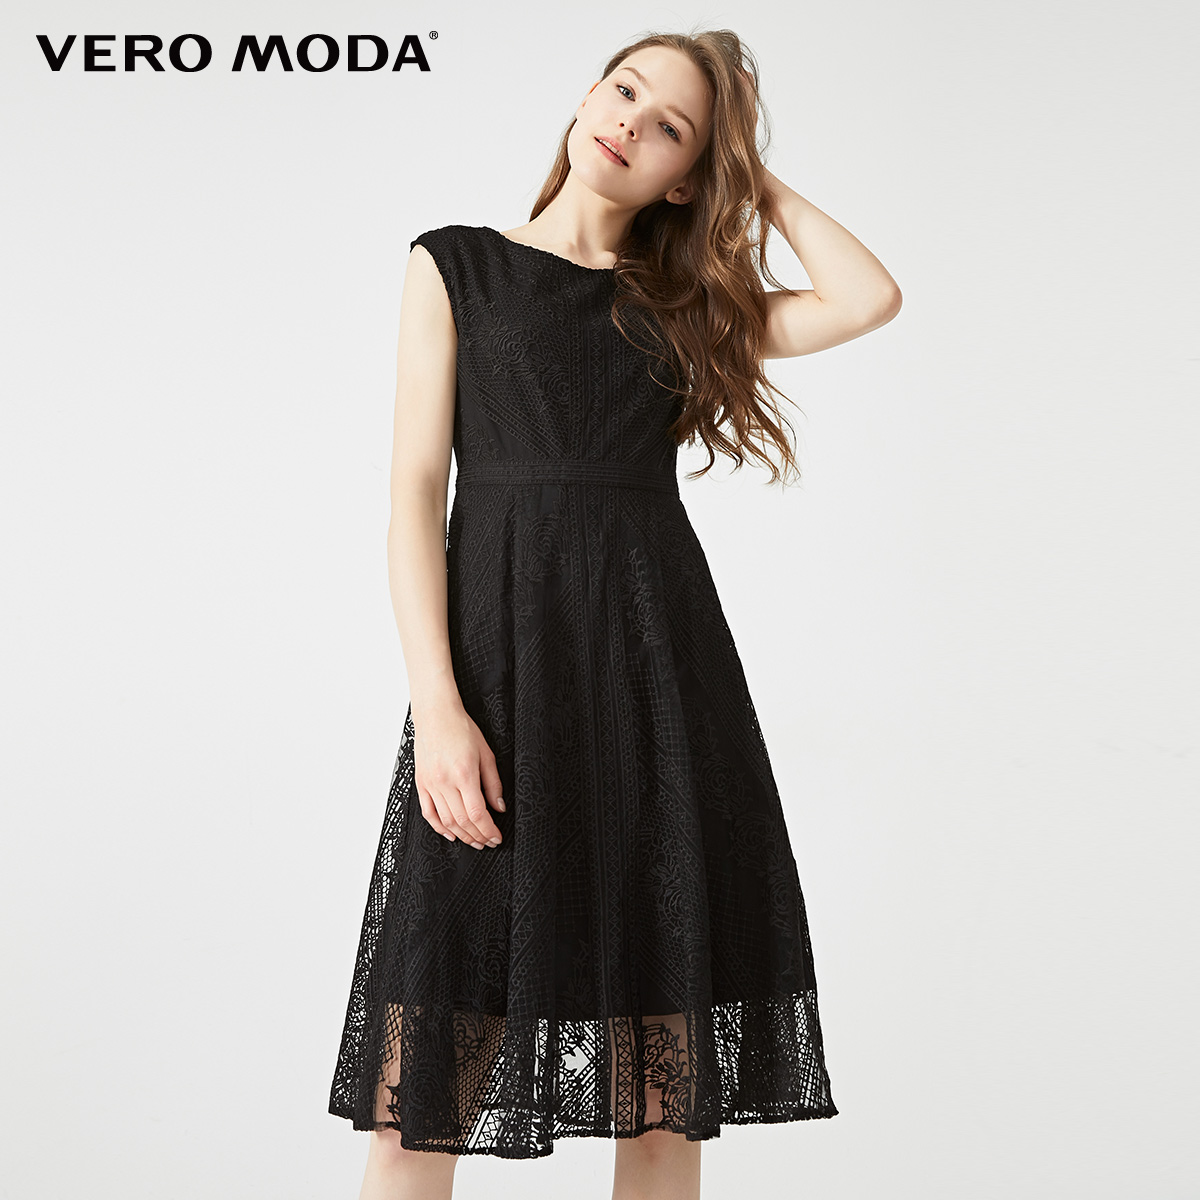 Vero Moda Women's Embroidered Two-tiered Sleeveless Knit Lace Party Dress | 31927A587